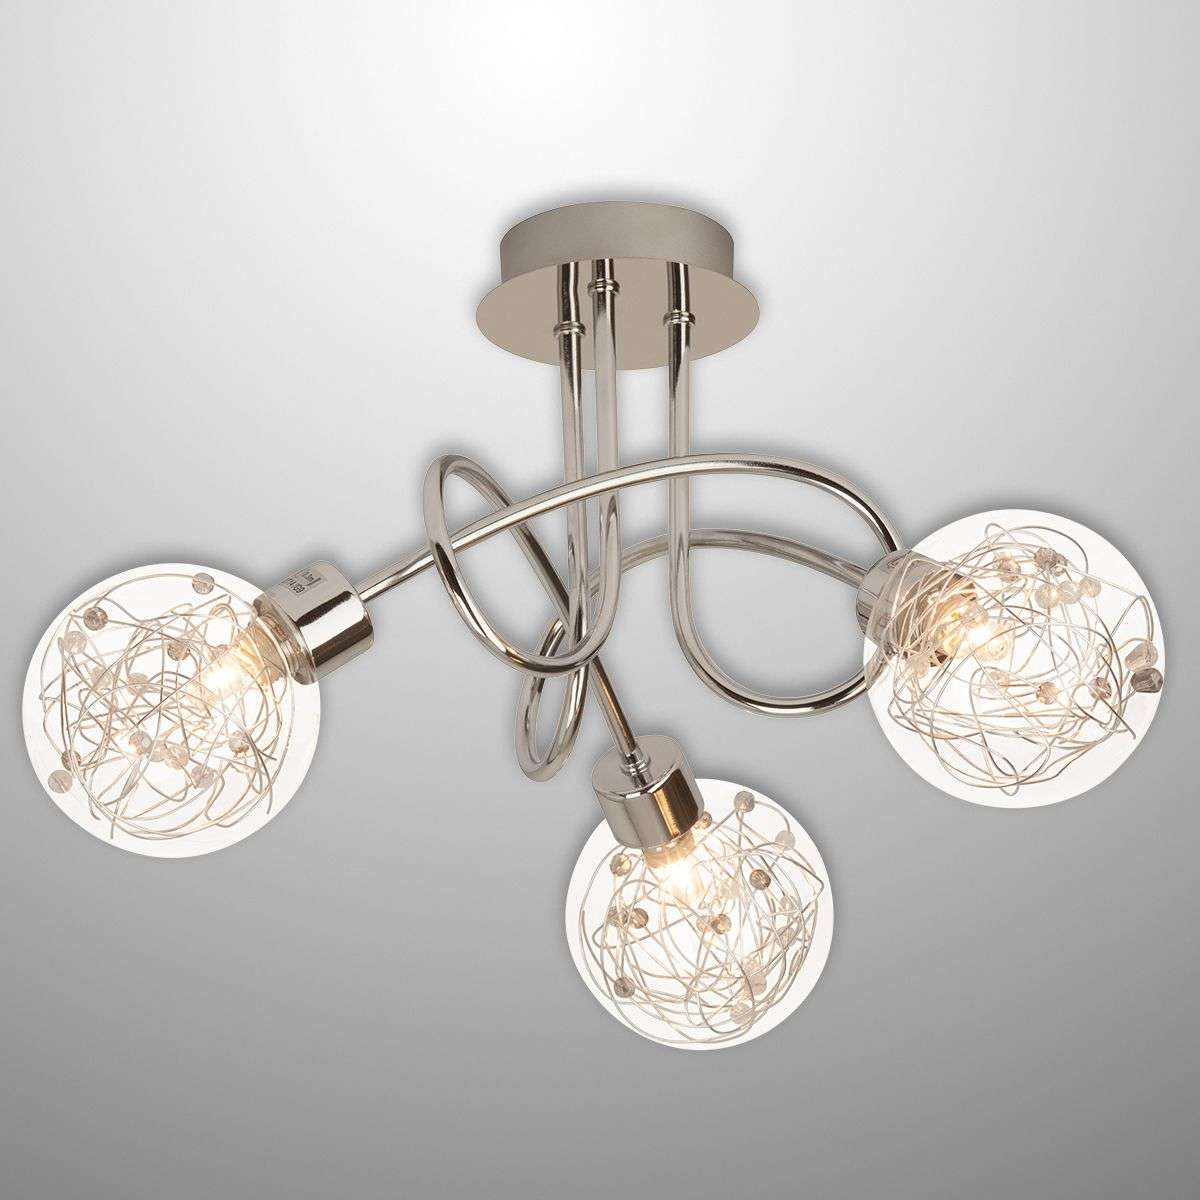 Joya 3-bulb ceiling light with glass lampshades-1509046-31